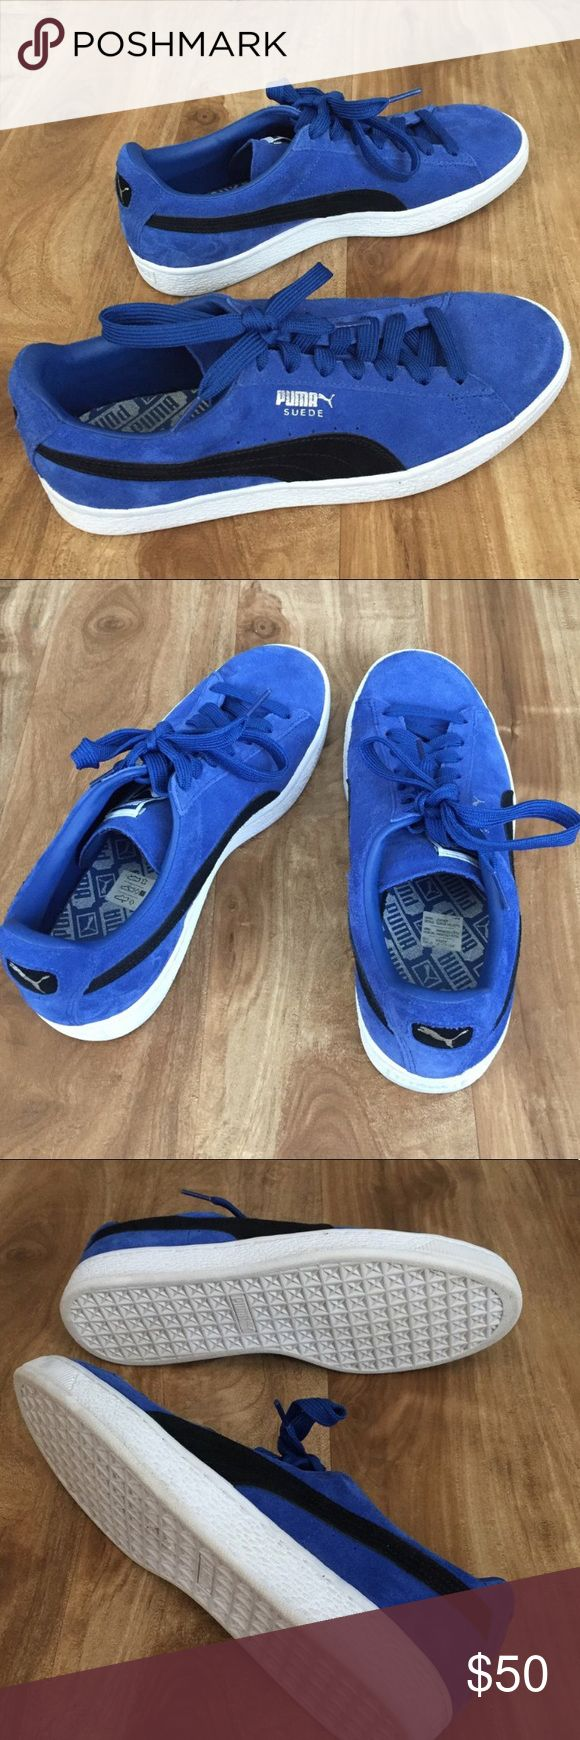 true blue puma black suede classic shoes mens size 10. worn once, has a lot of life left in them. practically brand new Puma Shoes Sneakers